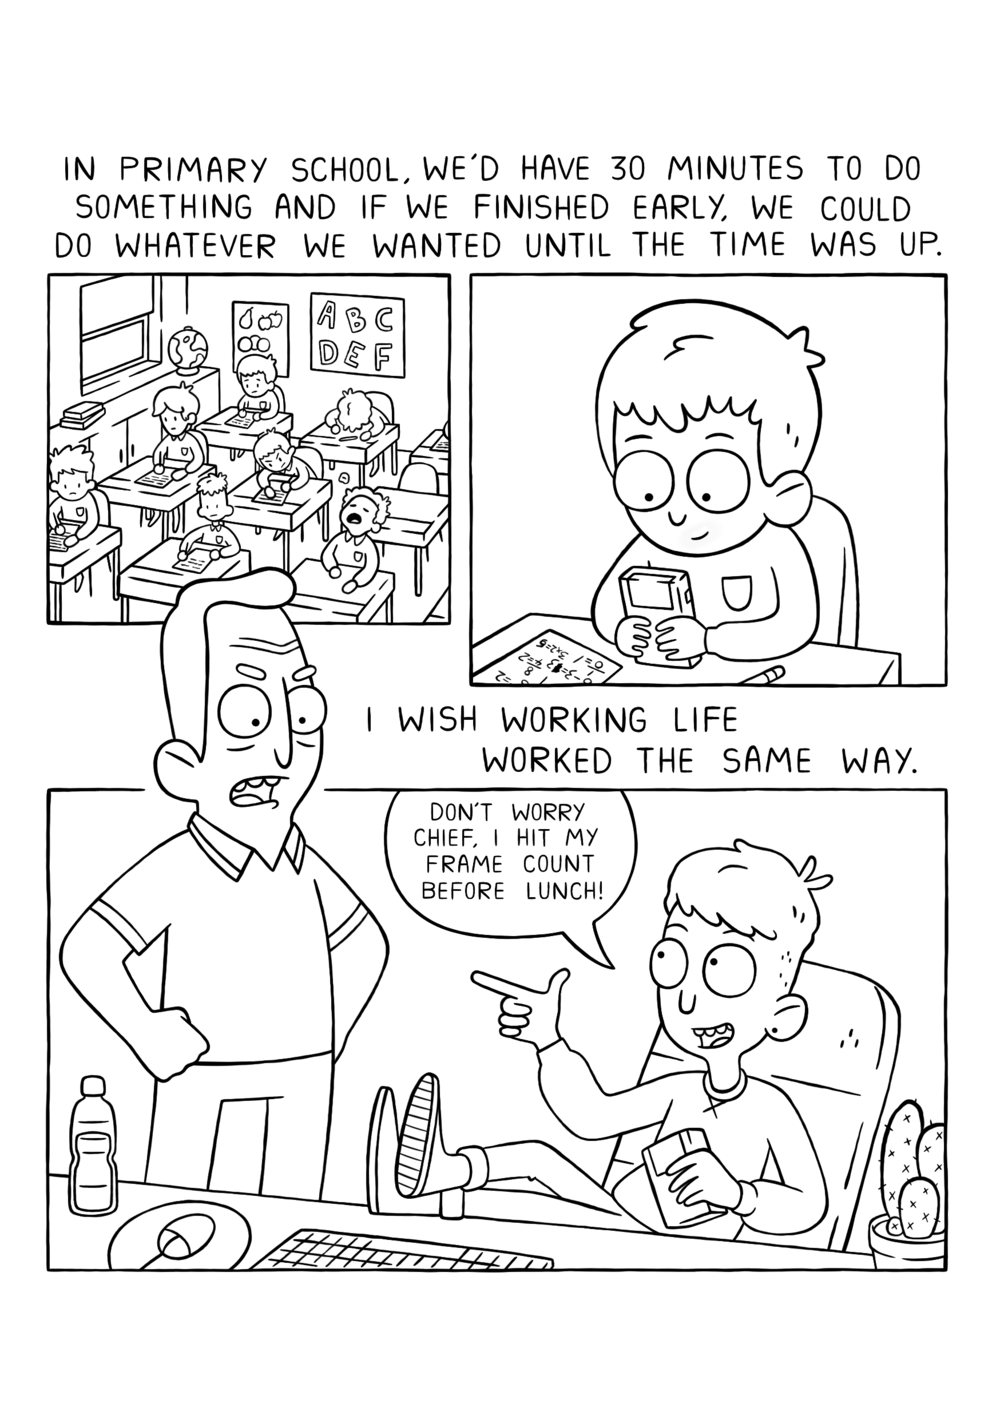 Gameboy Work Comic_006.png